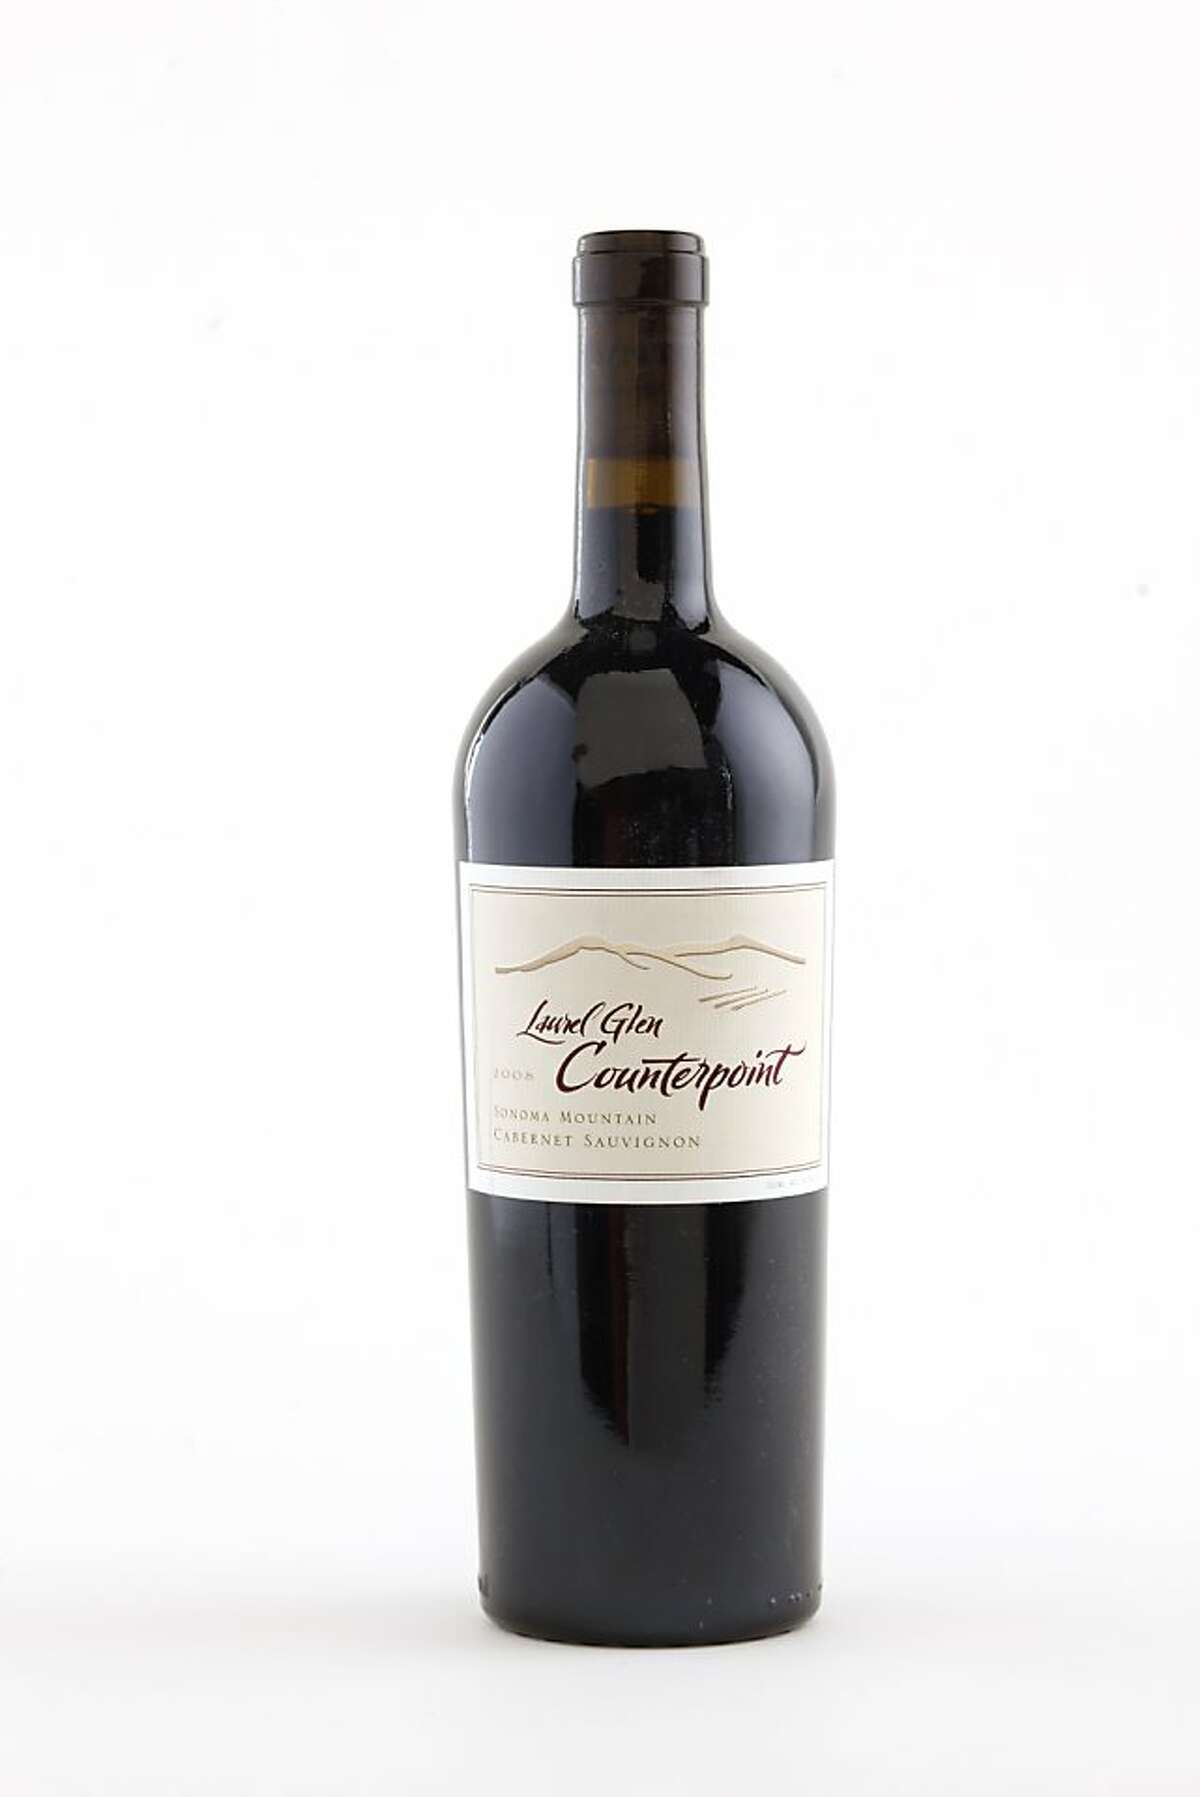 2008 Laurel Glen Counterpoint Cabernet as seen in San Francisco, California, on Wednesday, September 7, 2011. Ran on: 09-18-2011 Photo caption Dummy text goes here. Dummy text goes here. Dummy text goes here. Dummy text goes here. Dummy text goes here. Dummy text goes here. Dummy text goes here. Dummy text goes here.###Photo: GRID18_laurel_ph1315267200SFC###Live Caption:2008 Laurel Glen Counterpoint Cabernet as seen in San Francisco, California, on Wednesday, September 7, 2011.###Caption History:2008 Laurel Glen Counterpoint Cabernet as seen in San Francisco, California, on Wednesday, September 7, 2011.###Notes:###Special Instructions:MANDATORY CREDIT FOR PHOTOG AND SF CHRONICLE-NO SALES-MAGS OUT-INTERNET__OUT-TV OUT